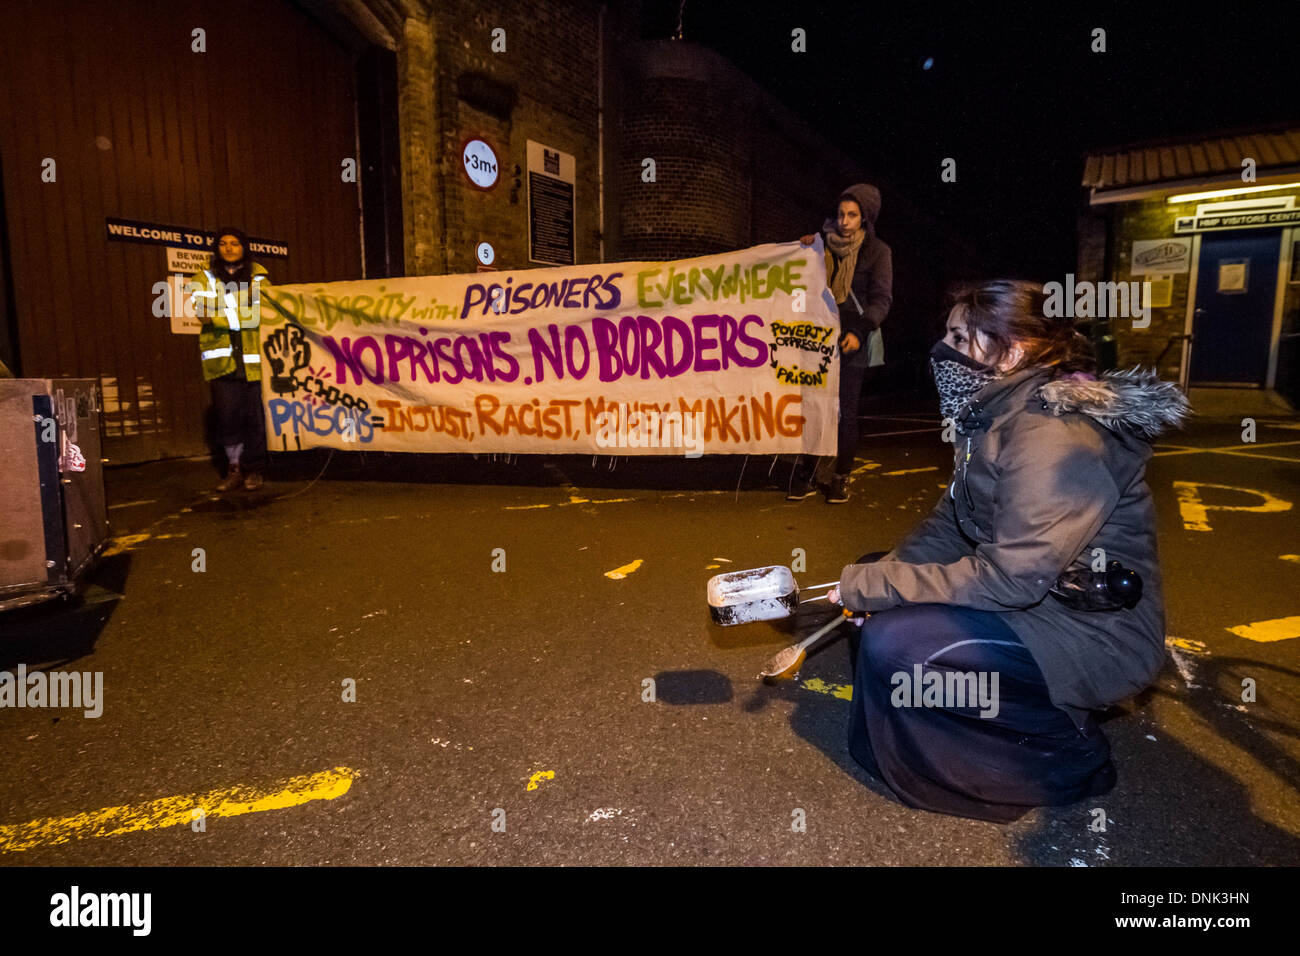 New Year's Eve Brixton HMP Prison Solidarity Protest in London, UK. - Stock Image